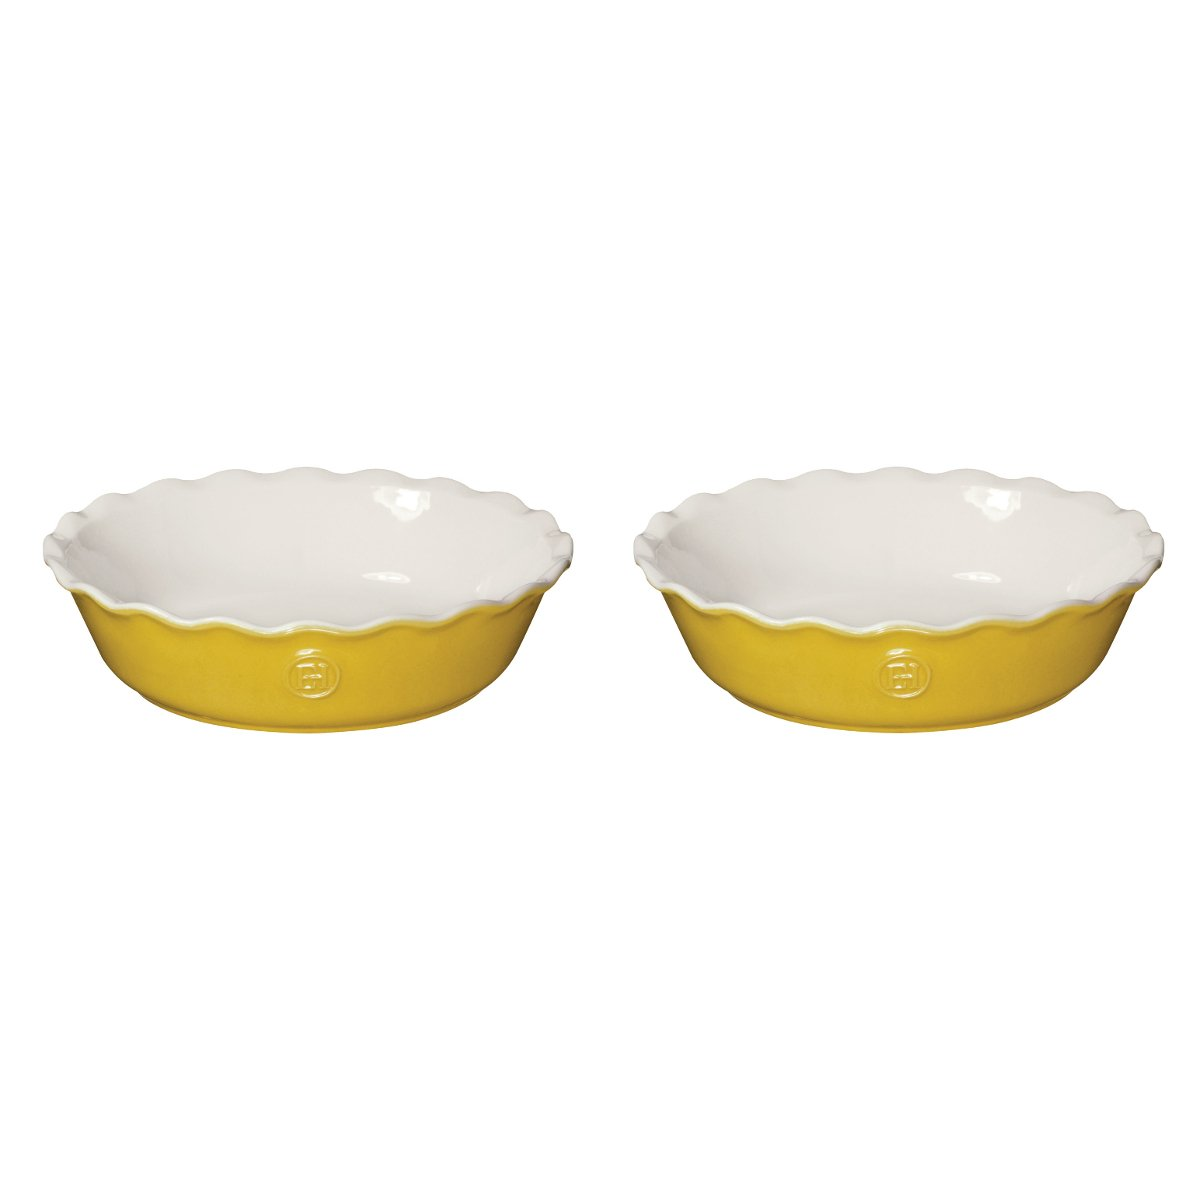 Emile Henry Leaves Ceramic 5.5 Inch Mini Pie Dish, Set of 2 by Emile Henry